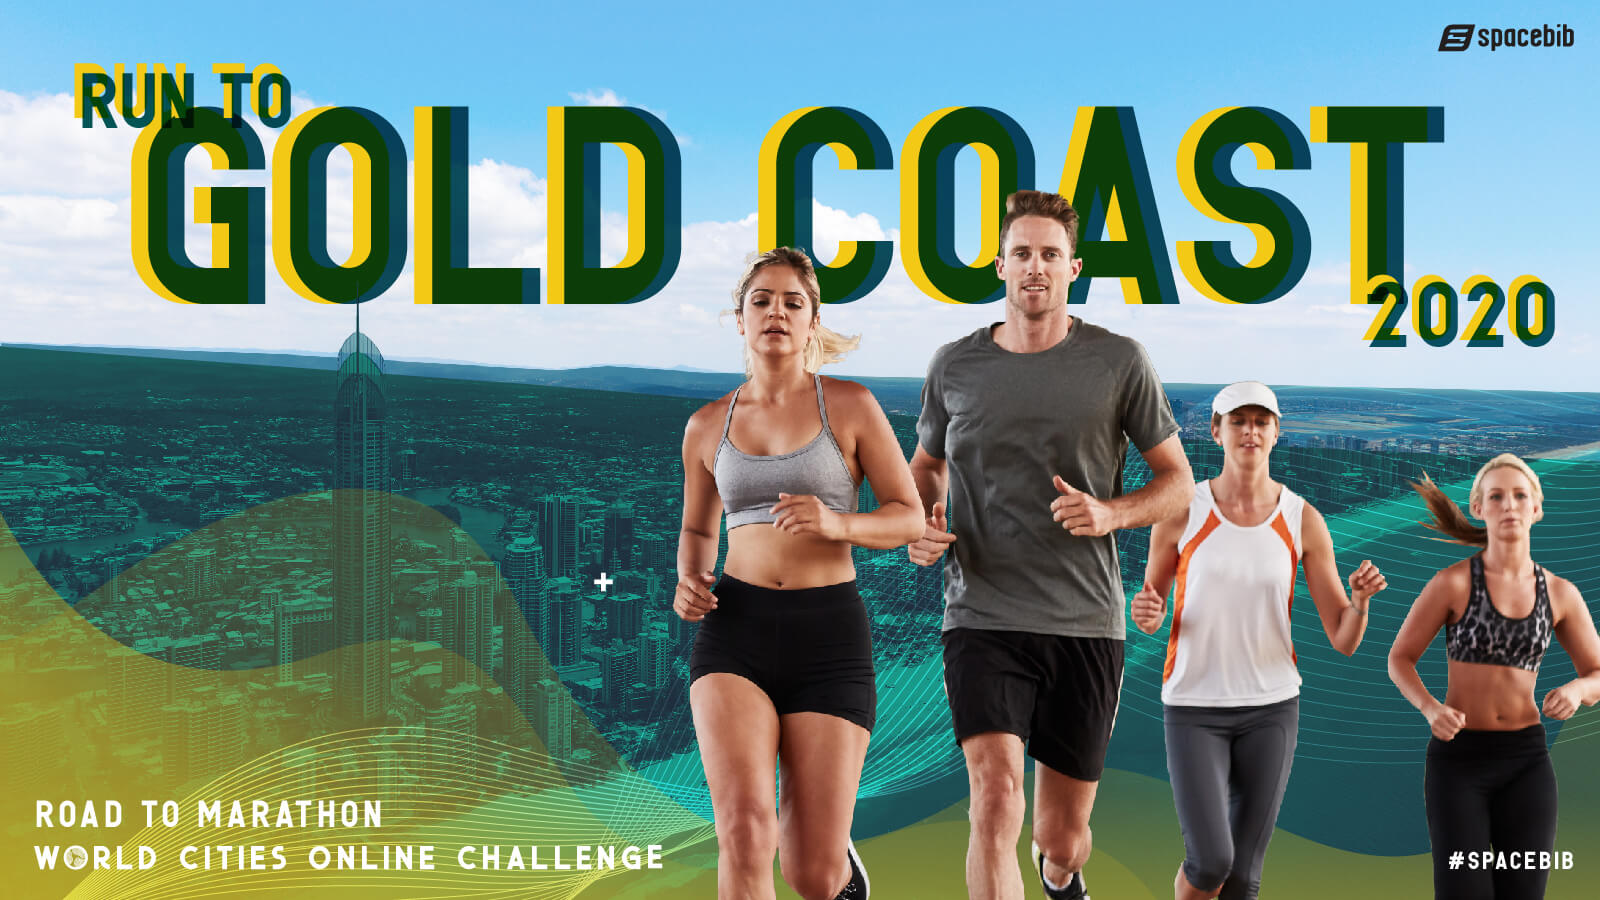 Run to Gold Coast 2020